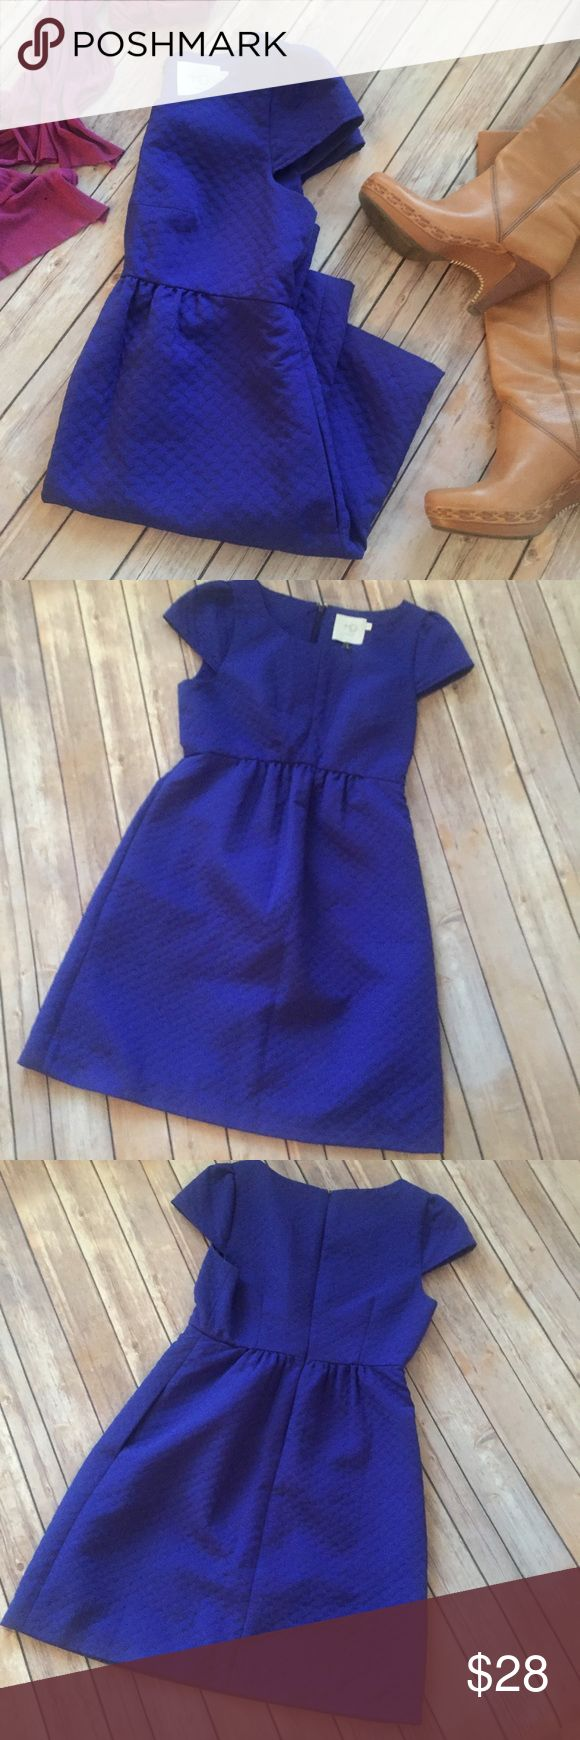 """HD ANTHROPOLOGY dress Pretty bright blue-purple dress with empire waist and pockets!! Cute capped sleeves and quilted pattern. 34"""" long, 15.5"""" waist across. 70% polyester, 30% cotton. Fully-lined. Machine washable. HD in Paris Dresses Midi"""